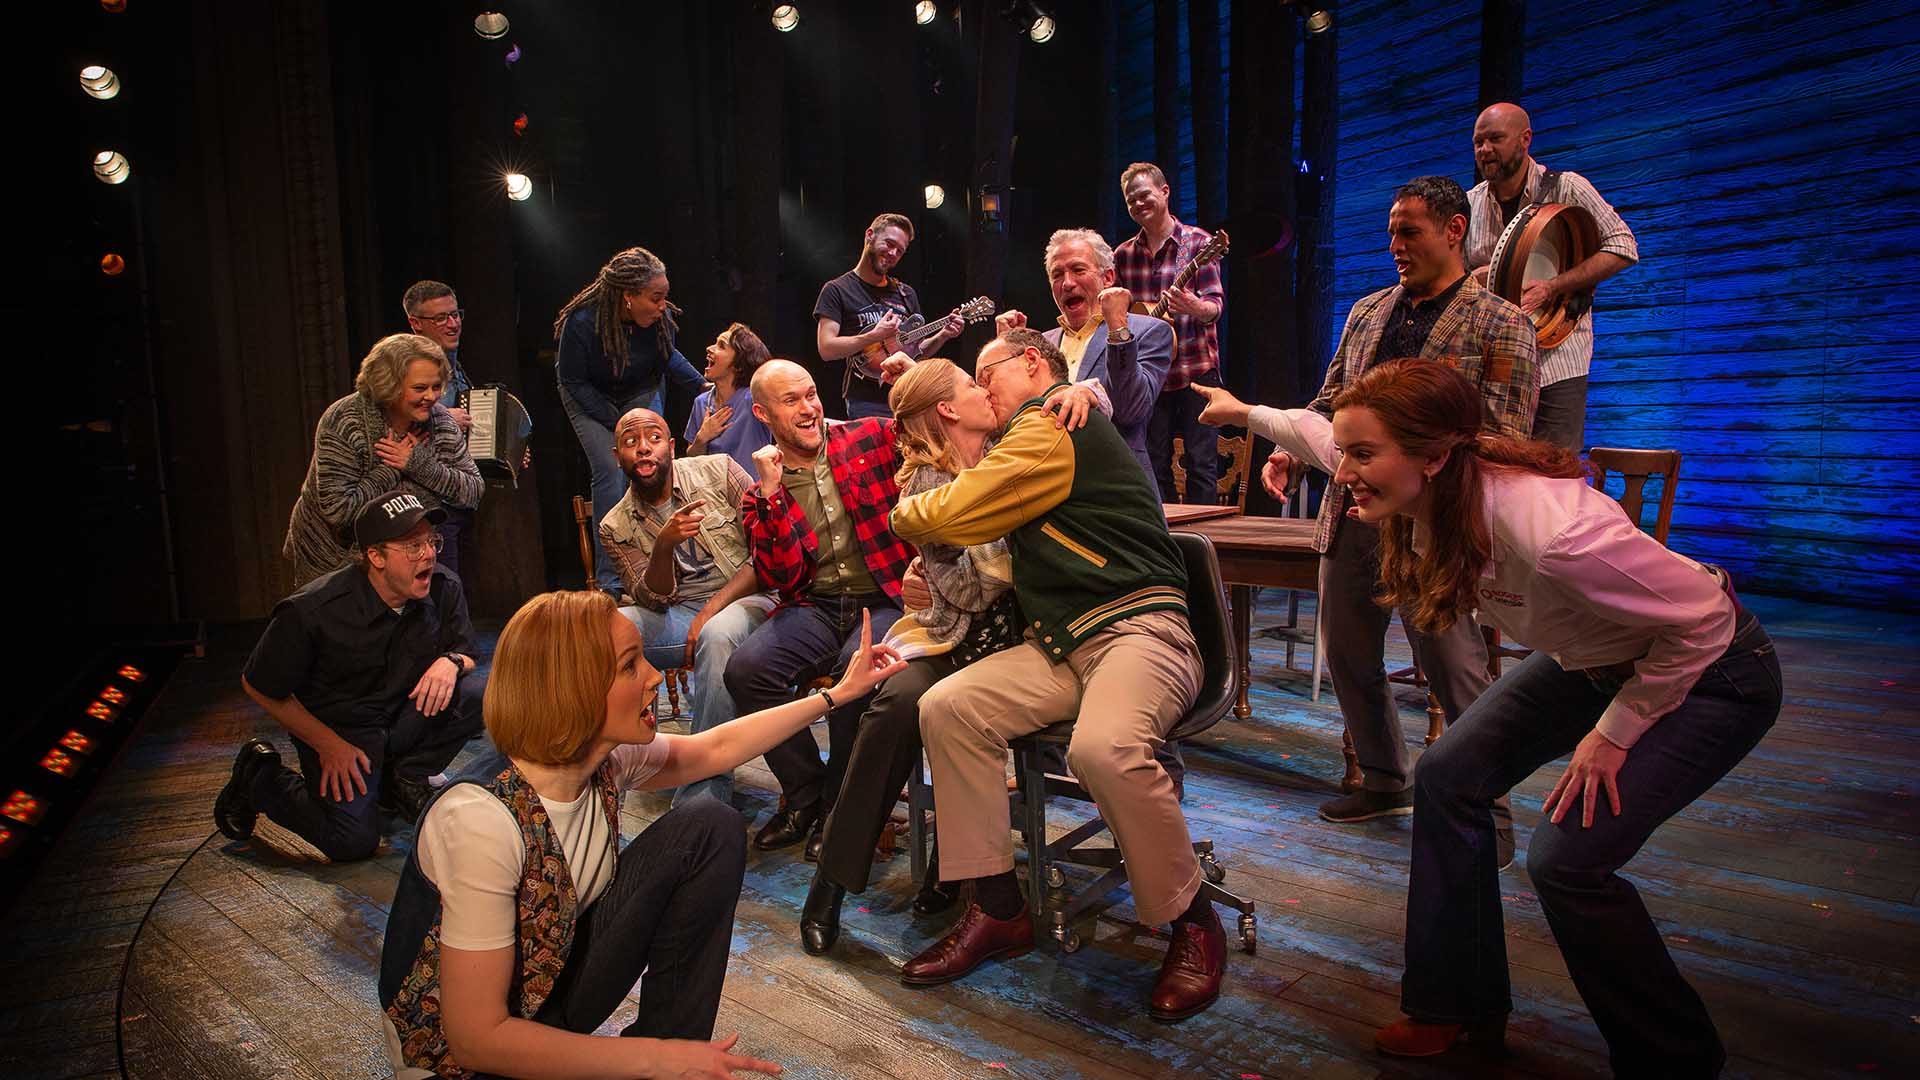 'Come From Away' Will Restart Its Sydney Season for Fully Vaccinated Audiences in October